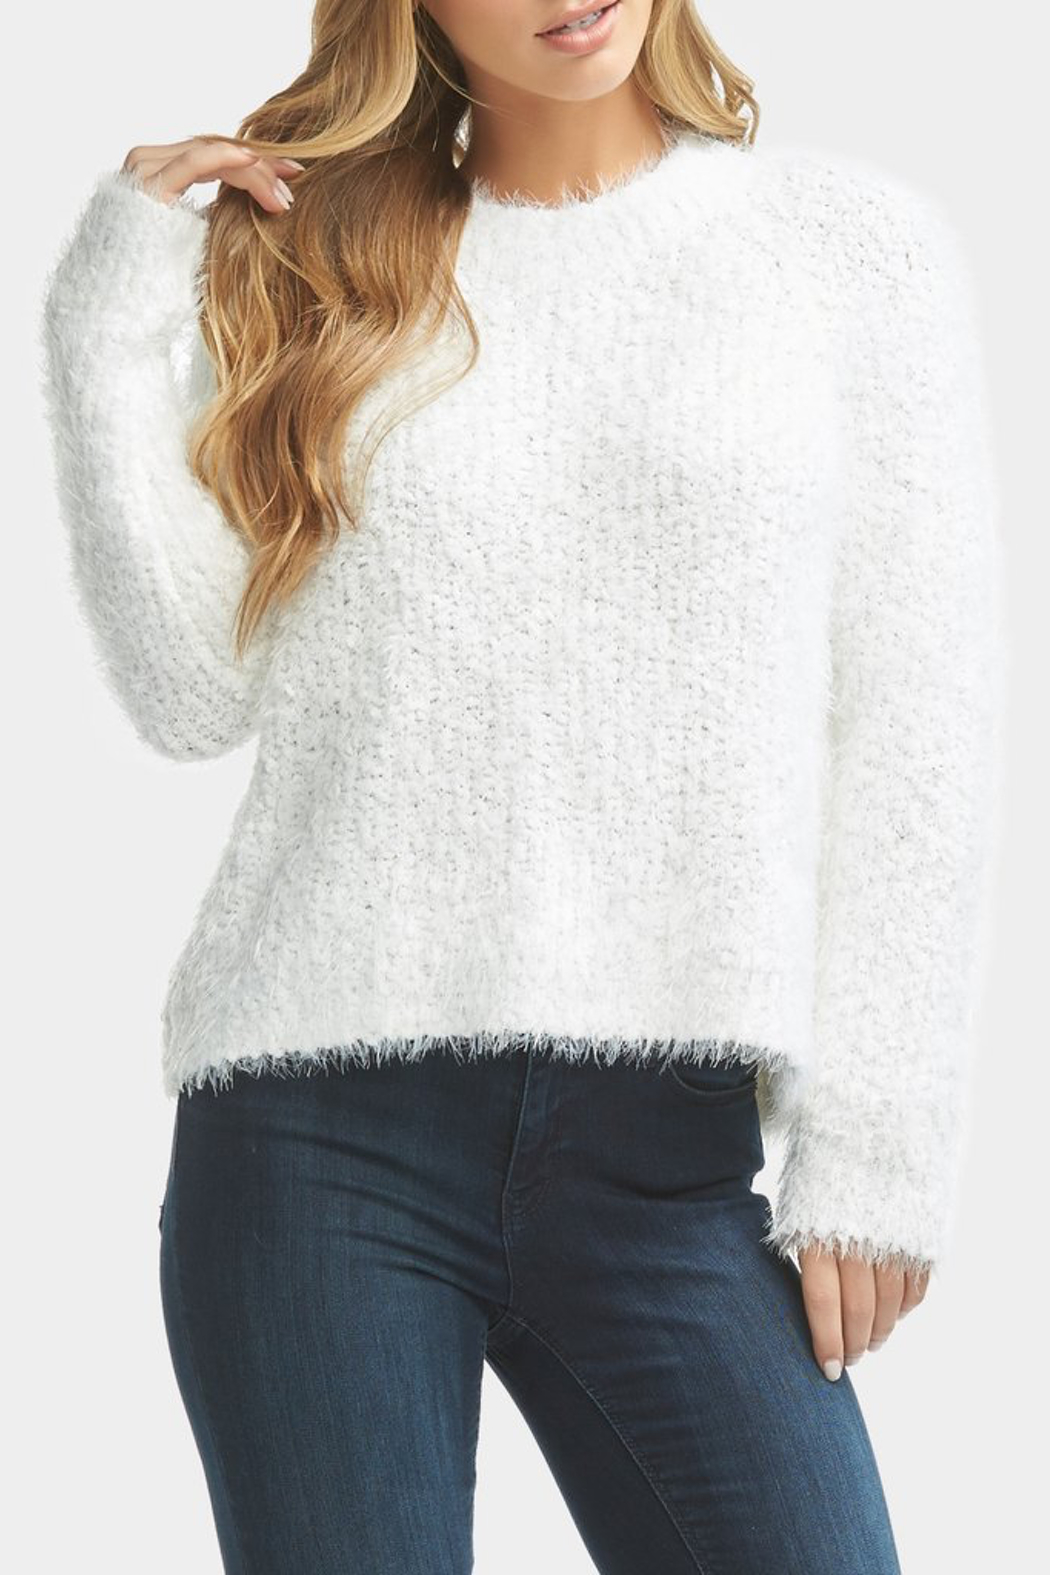 Tart Collections Delisa Sweater - Front Full Image